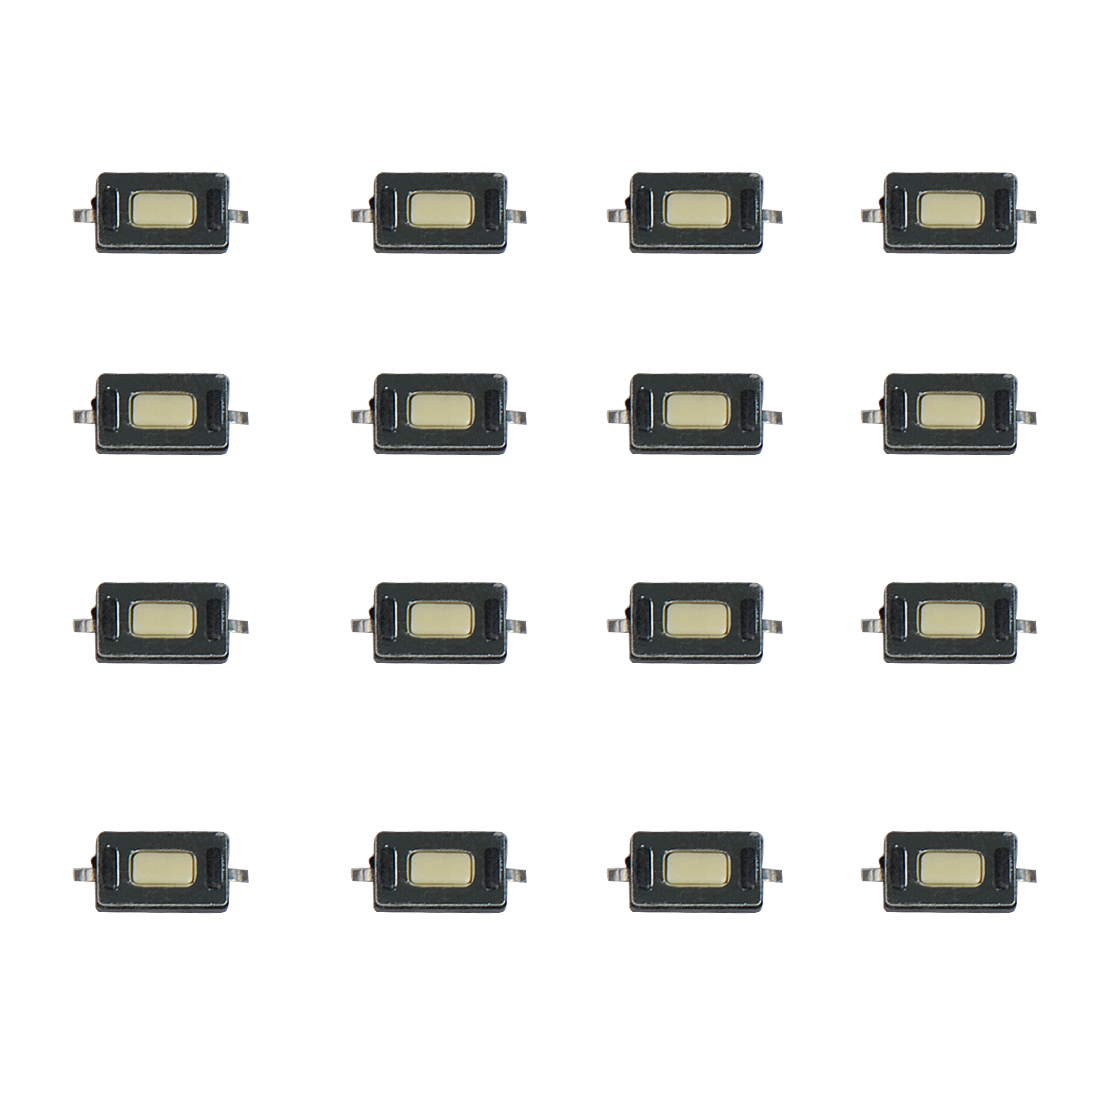 50Pcs 3*6*2.5 SMD 2pin Touch Microswitch Tact Switch Push Button Switch for Car Remote Control LCD